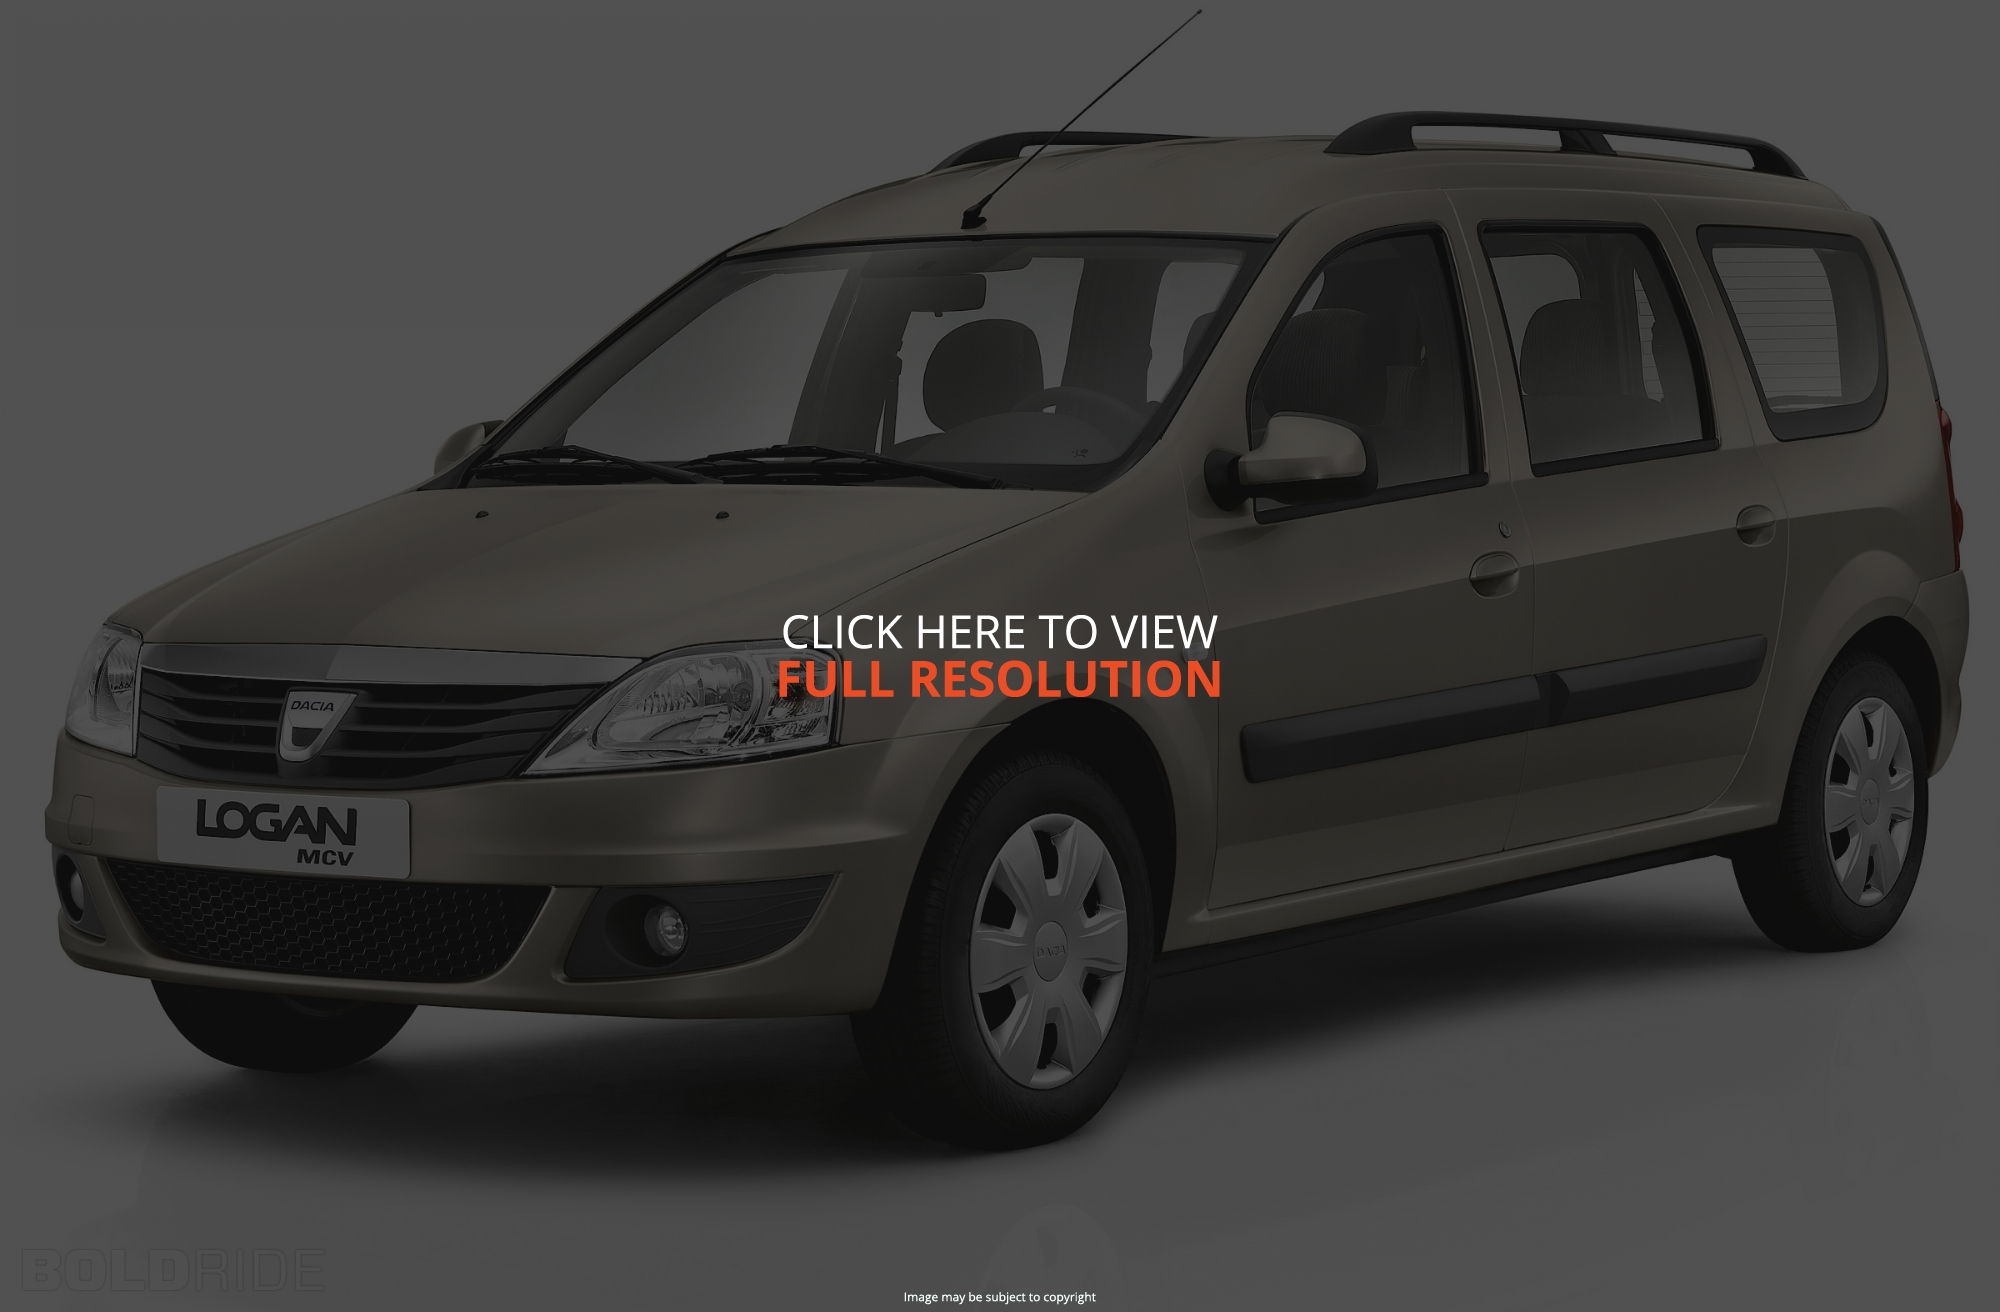 dacia logan pictures #3